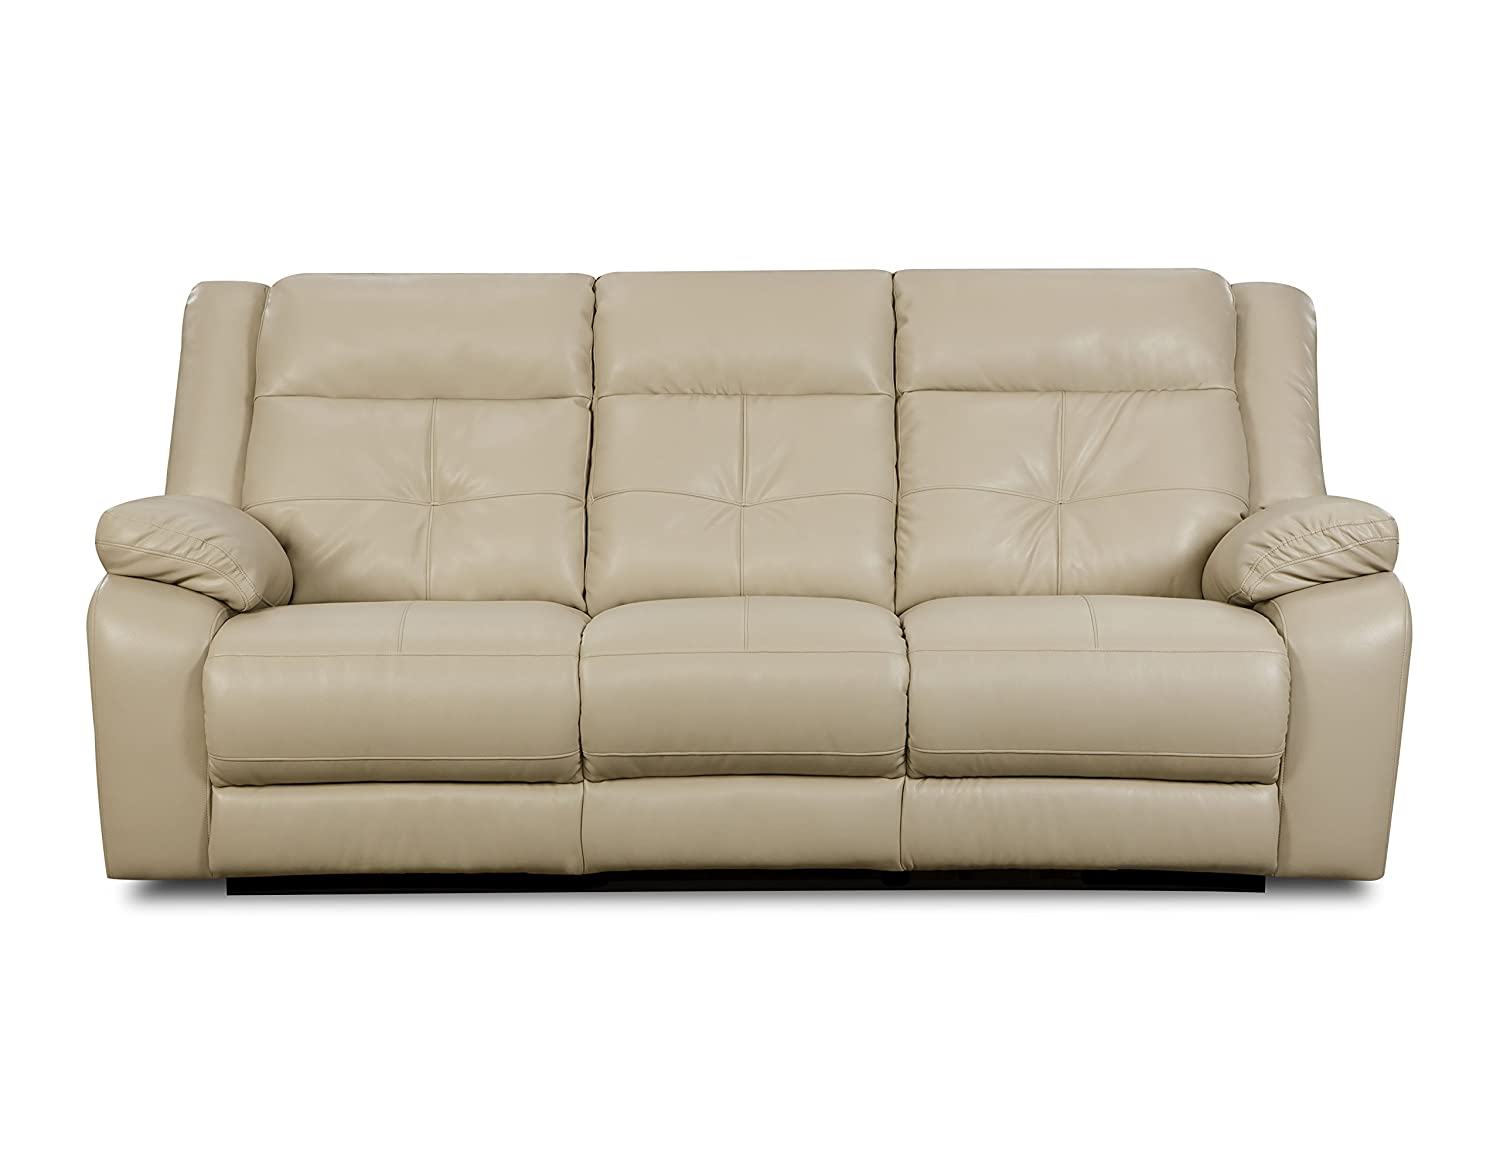 lots image simmons best piece sofas living inside sectionals furniture couches room manhattan under sectional big